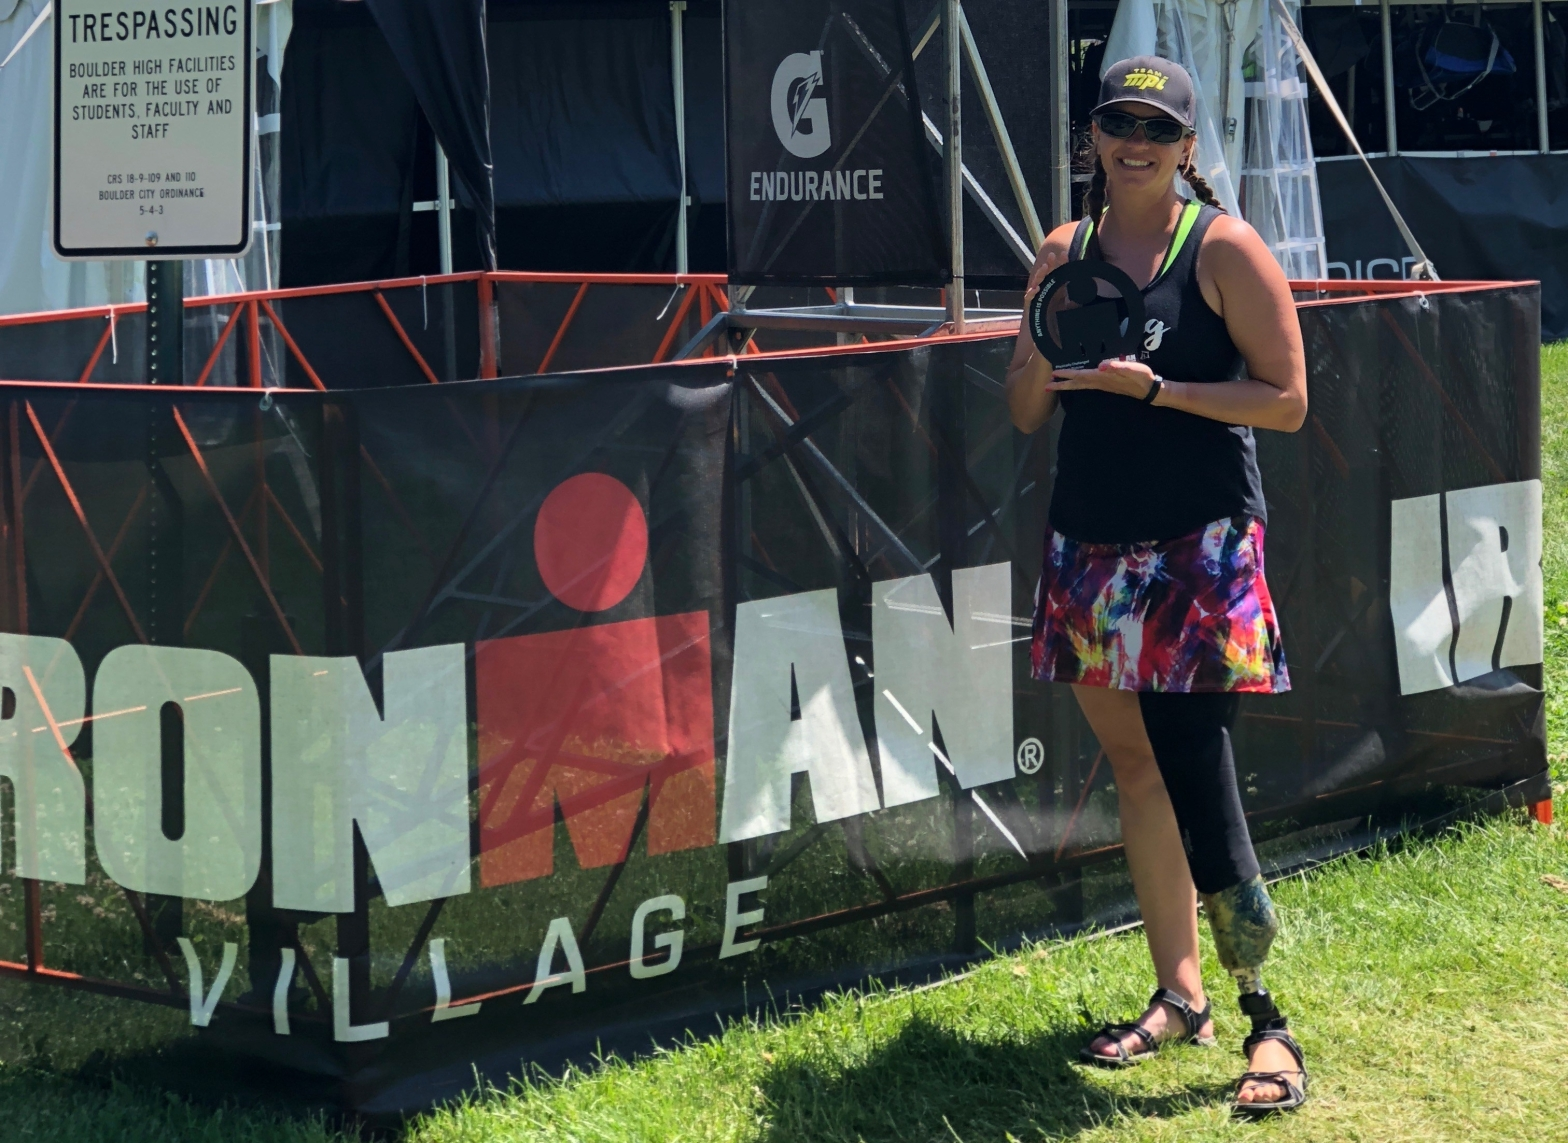 Me with my PC award at Athlete Village the day after IM Boulder 2018